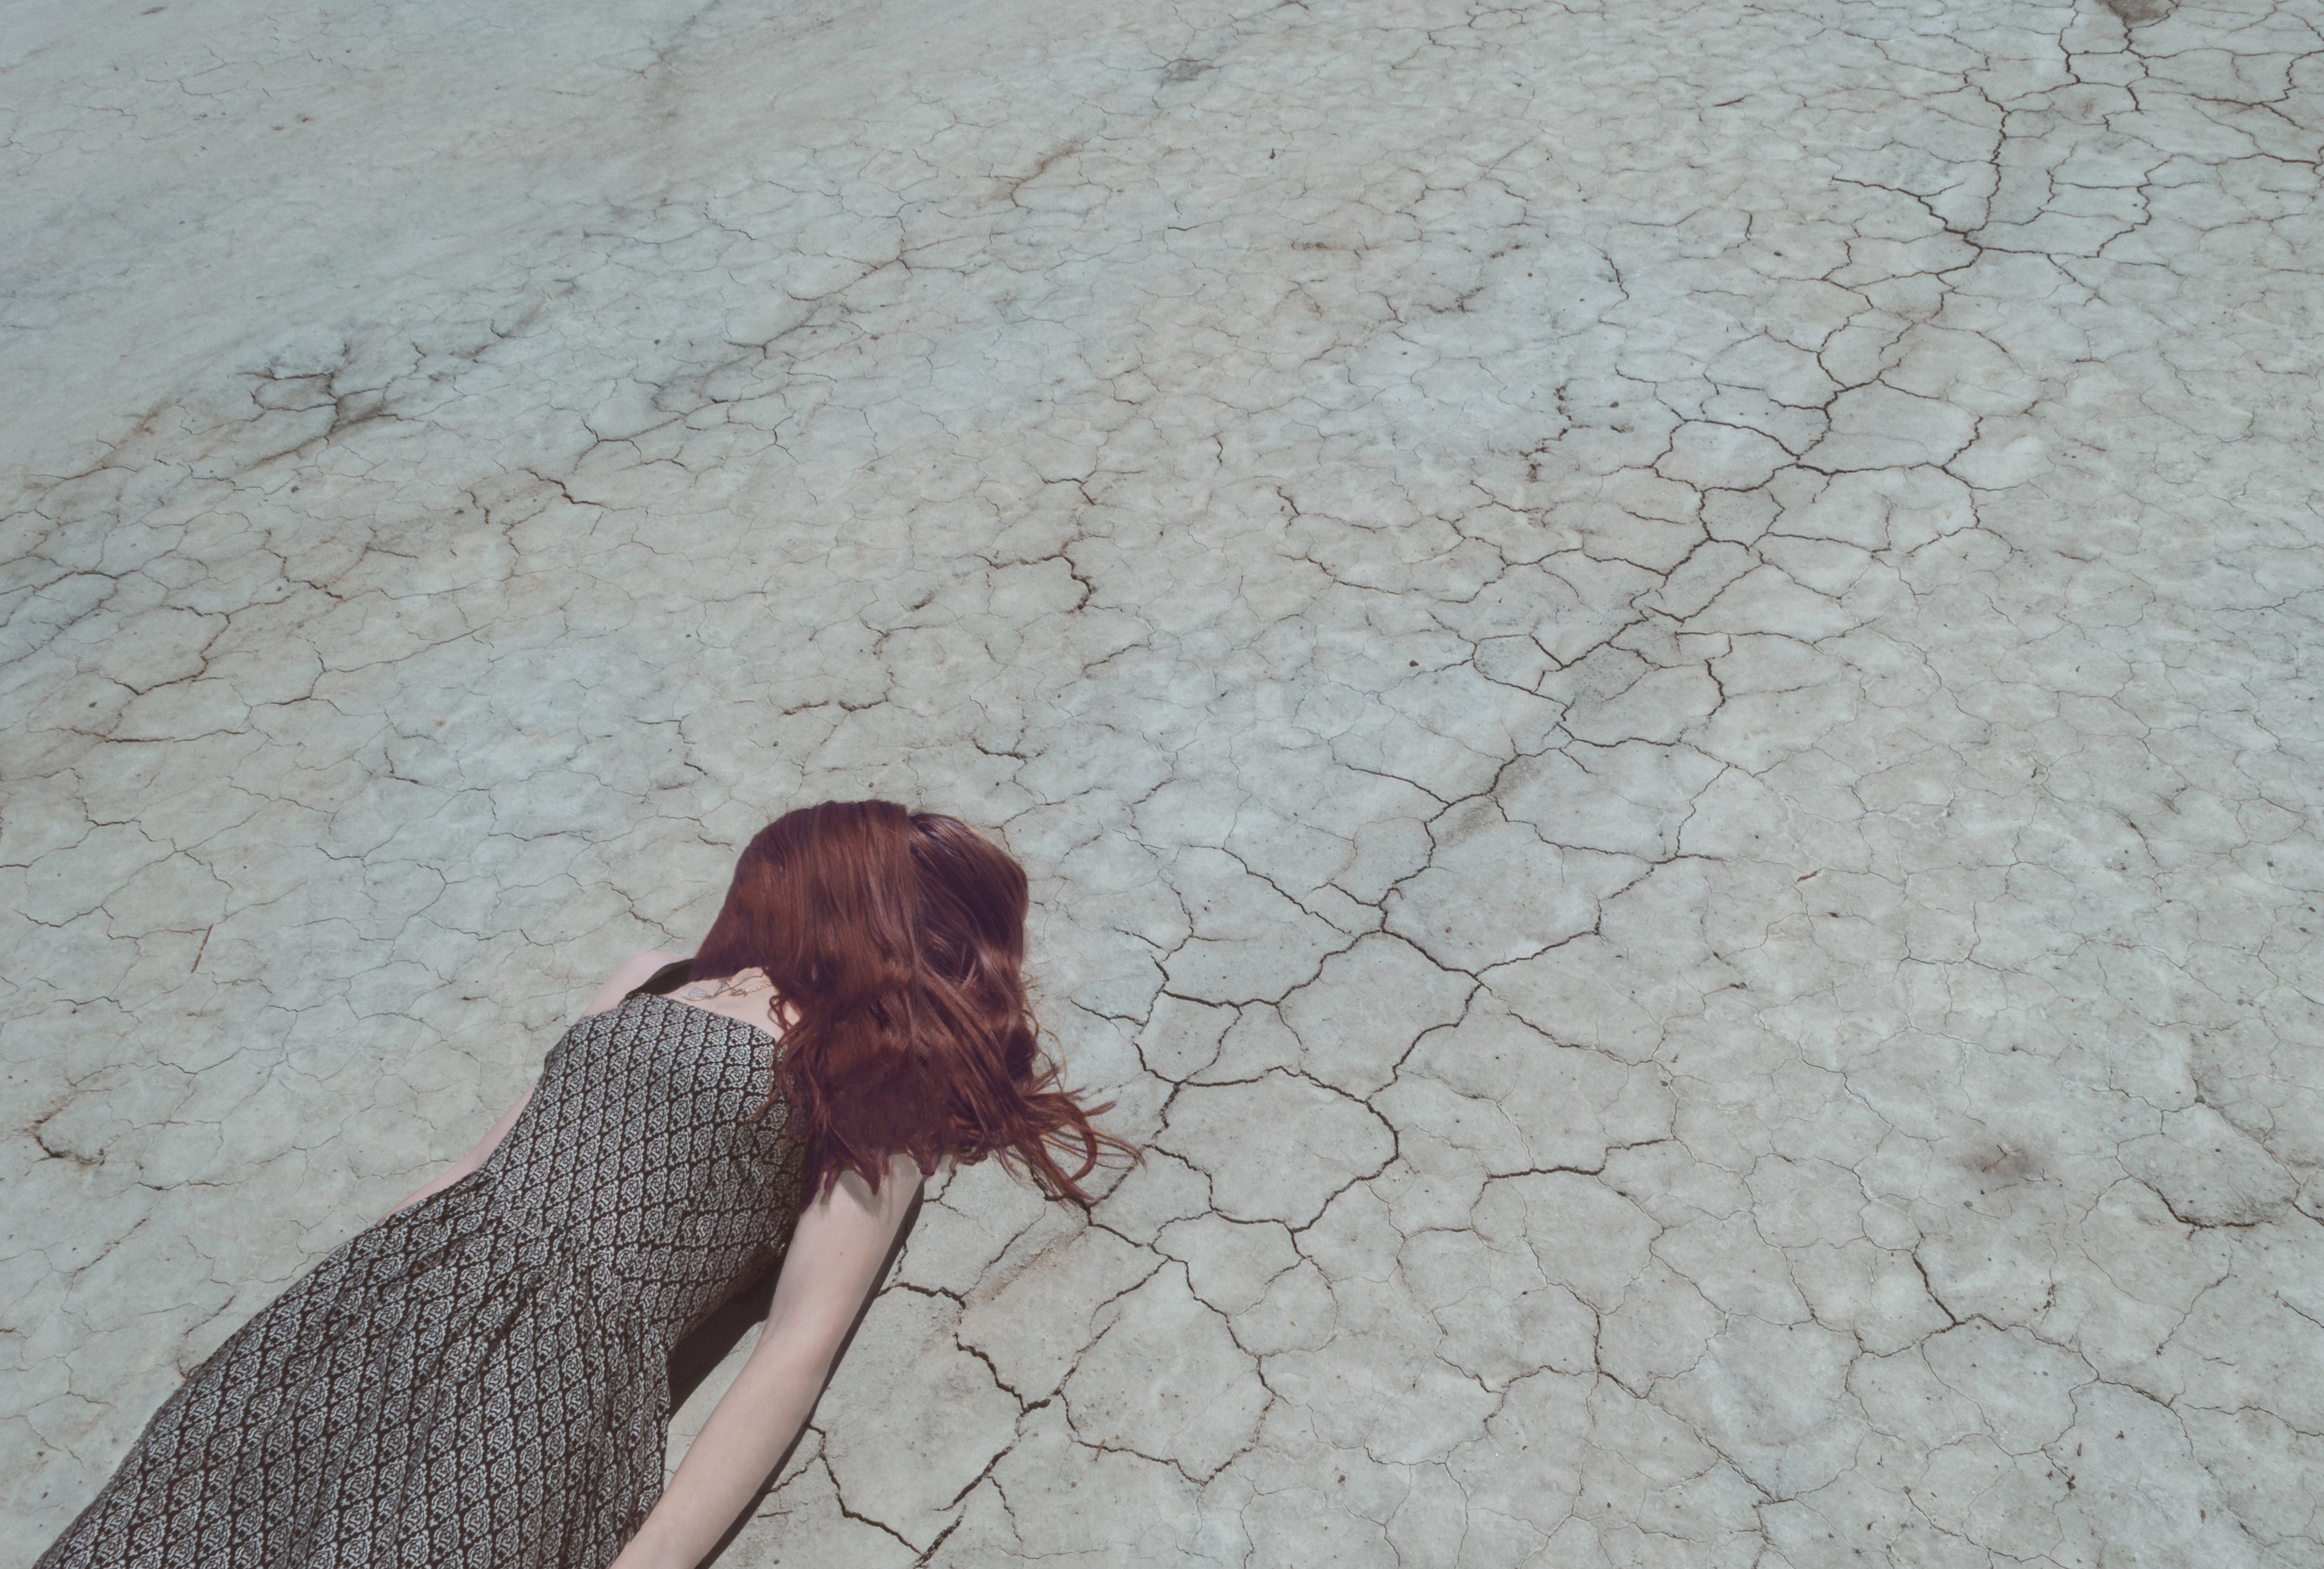 Girl with hair over face lays on drought landscape